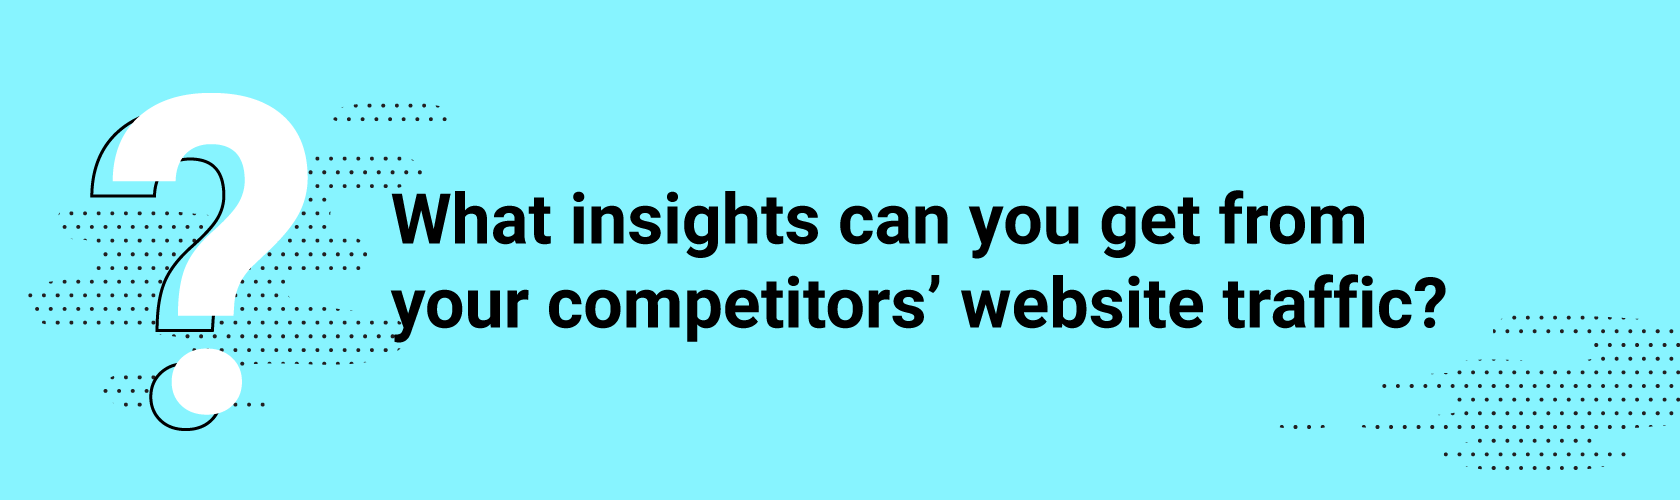 What insights can you get from your competitors' website traffic?